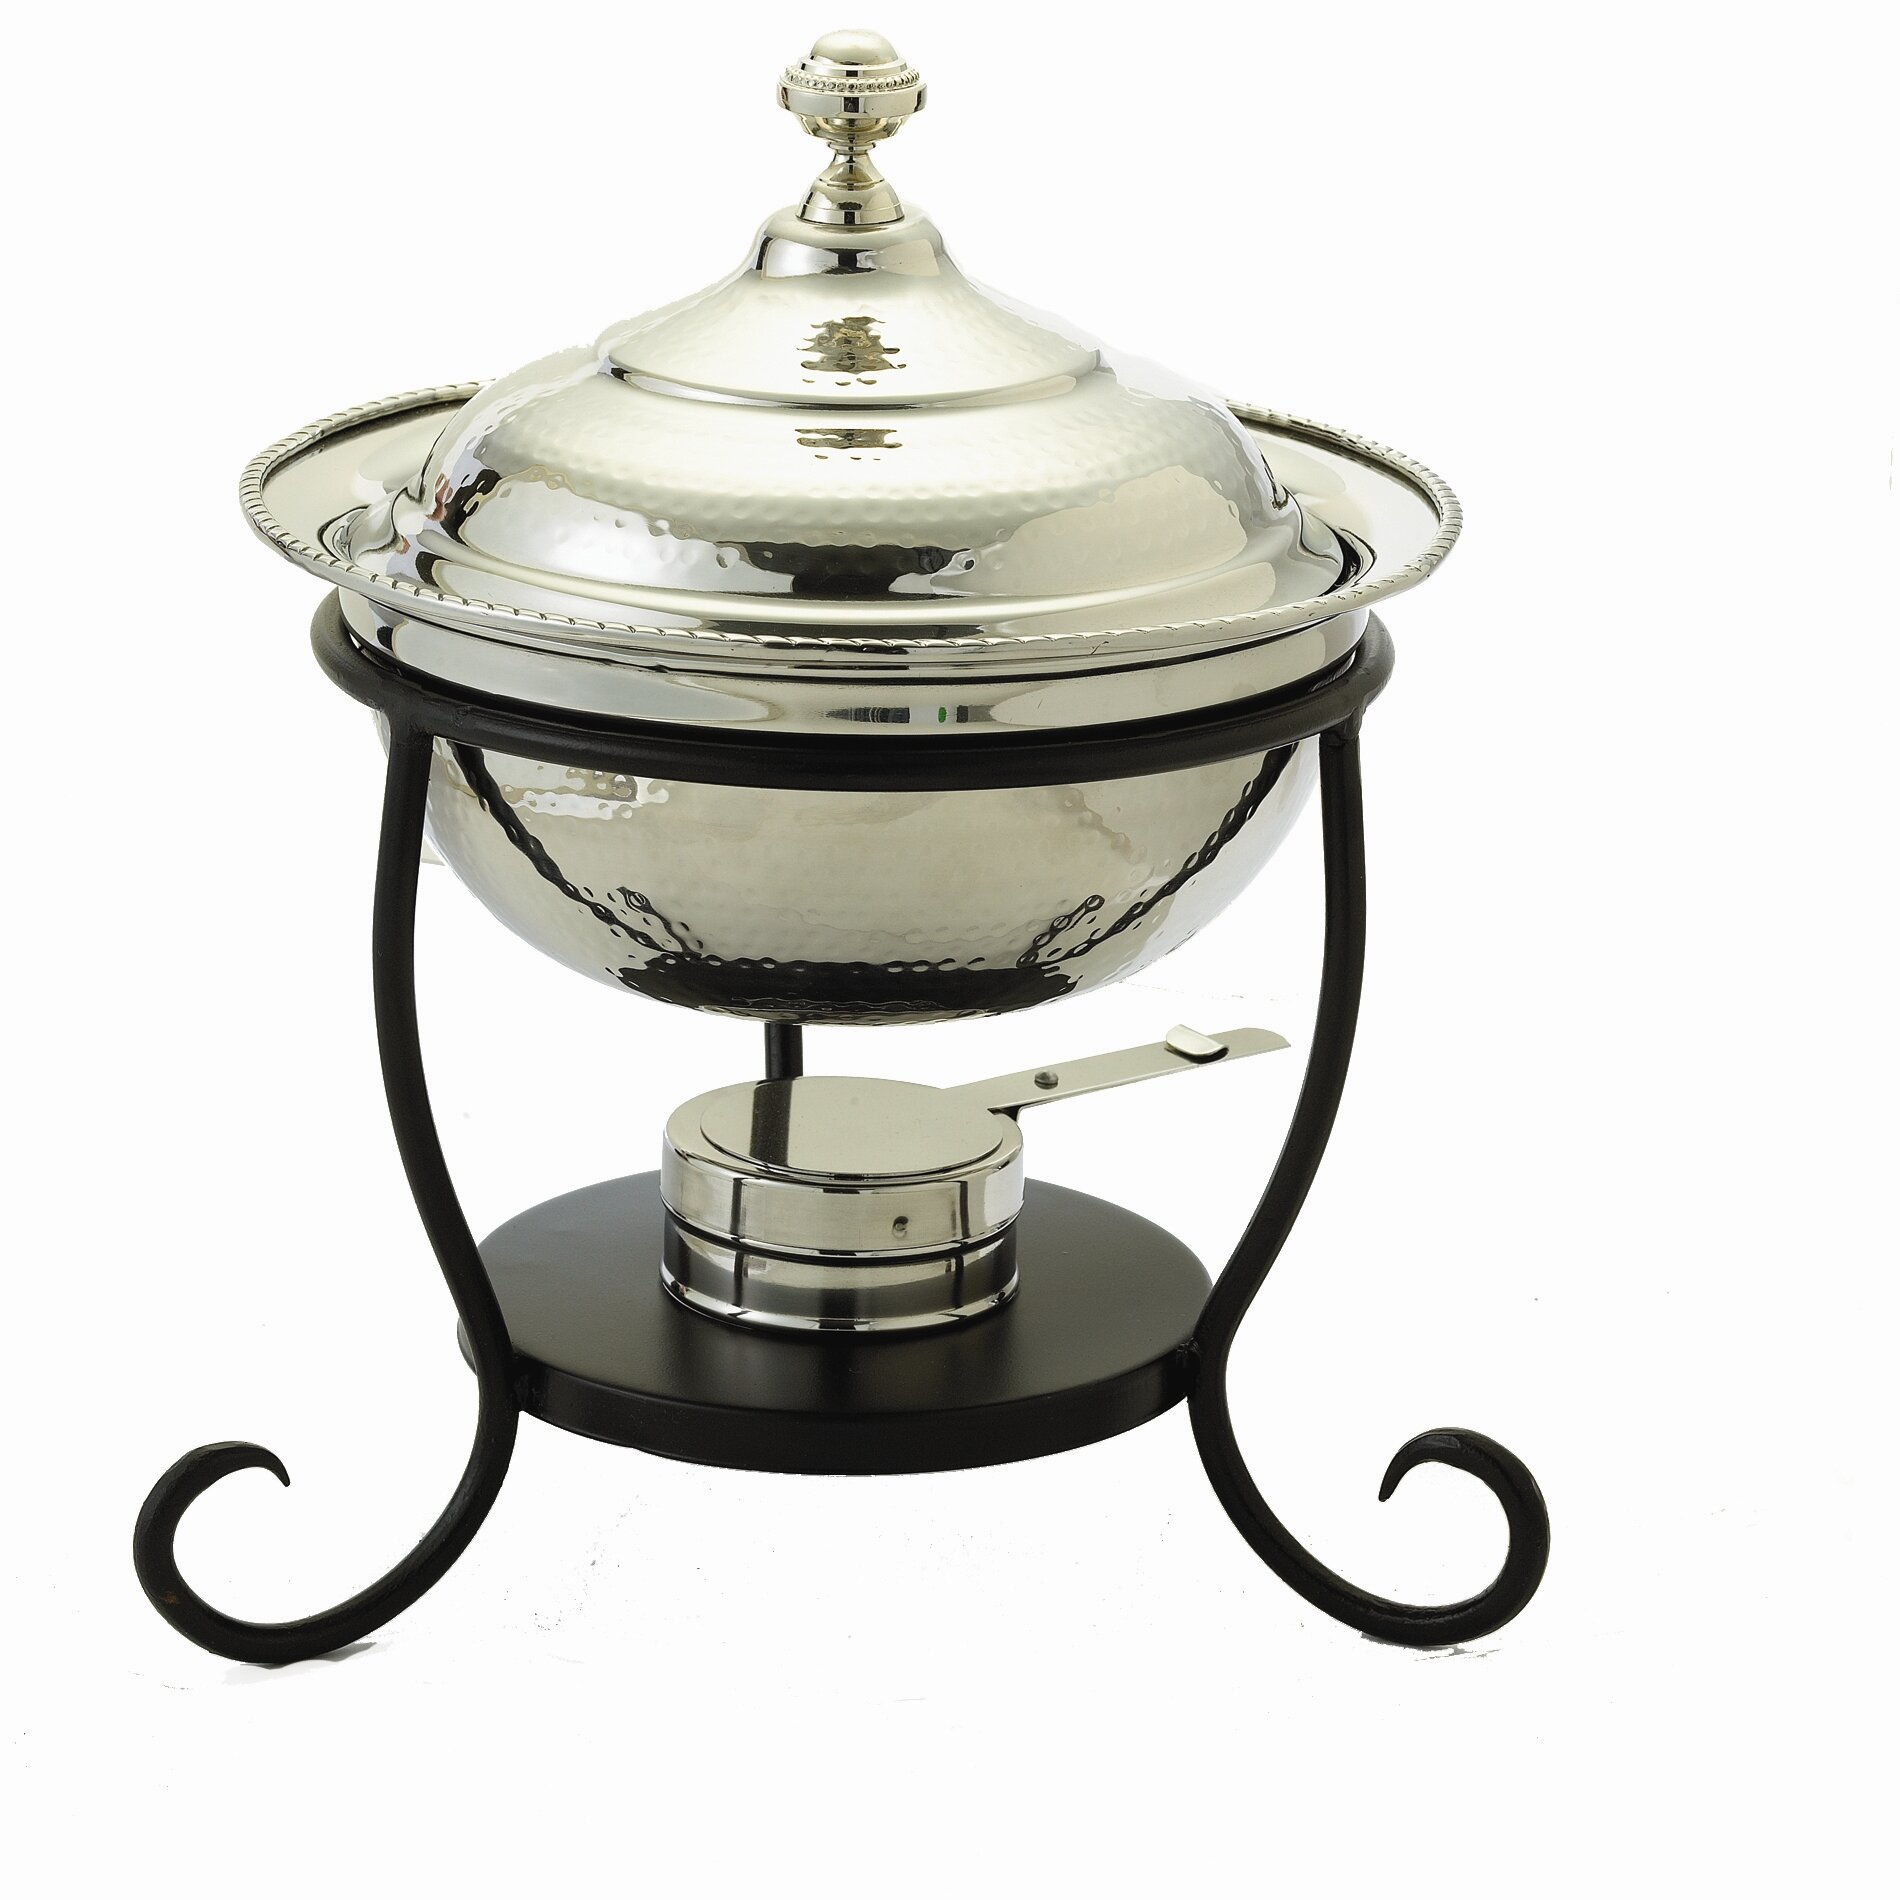 Old Dutch Round Chafing Dish Amp Reviews Wayfair